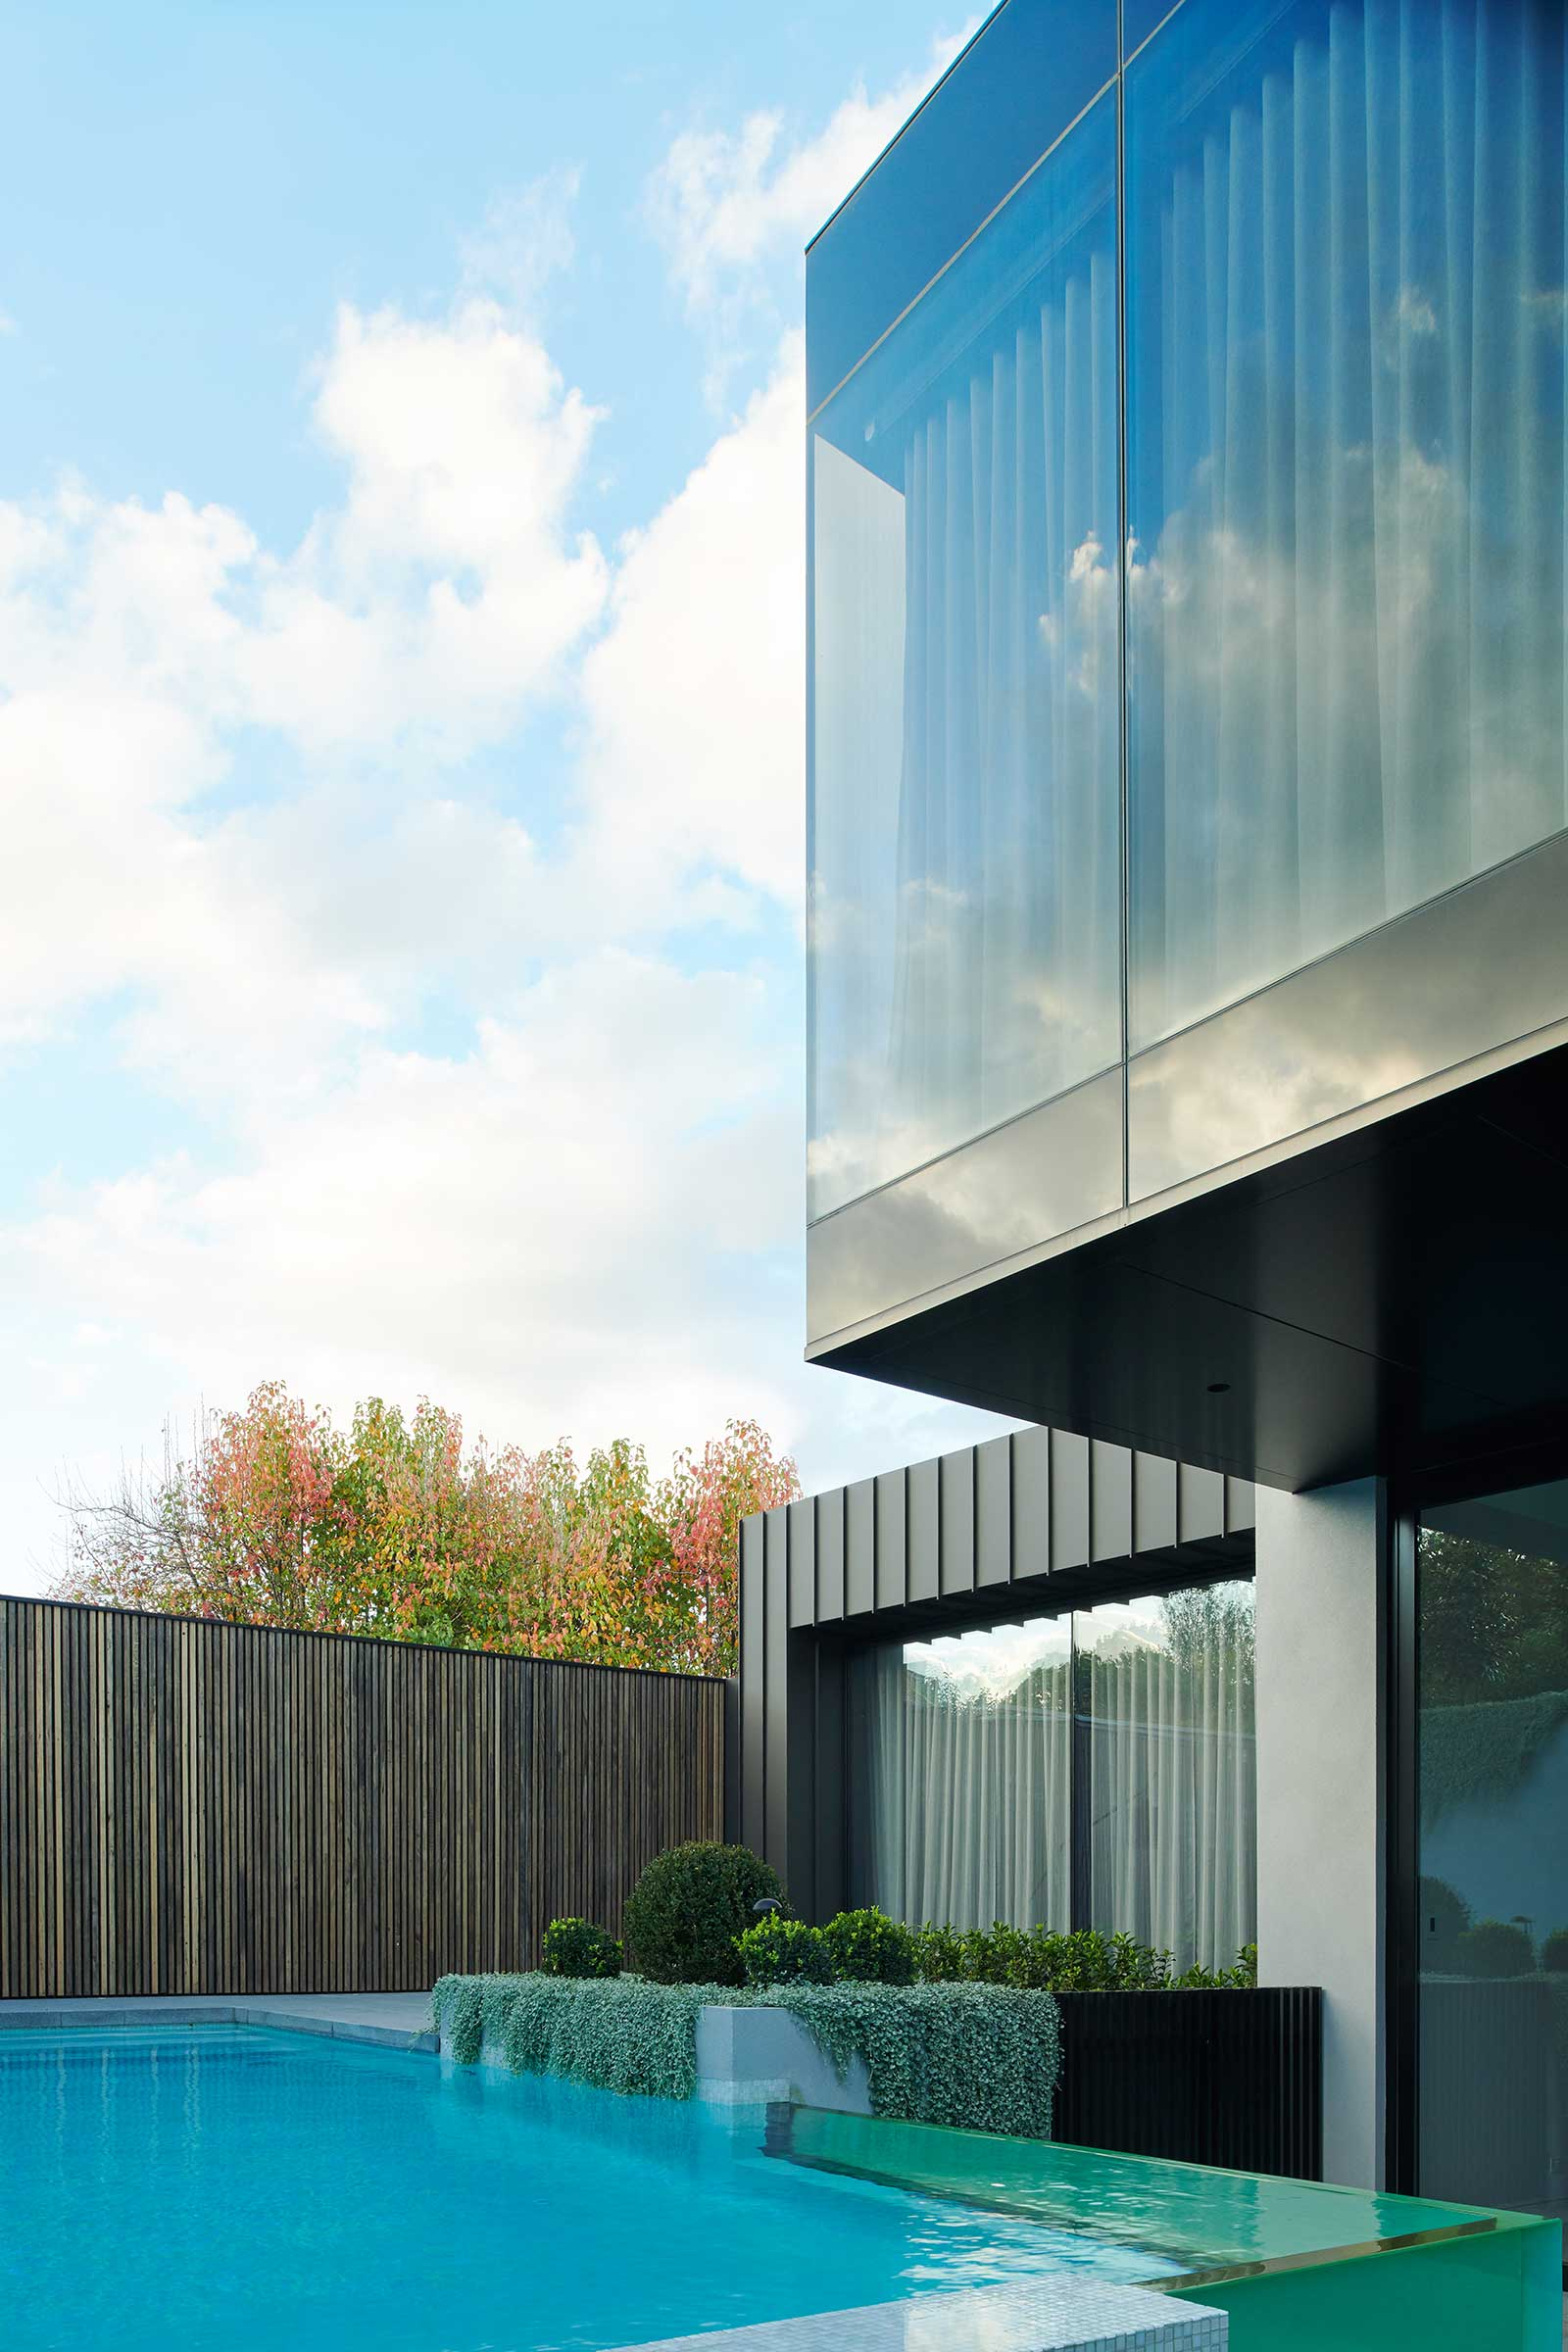 35_taouk_architects_bramley_court_veeral_6847.jpg